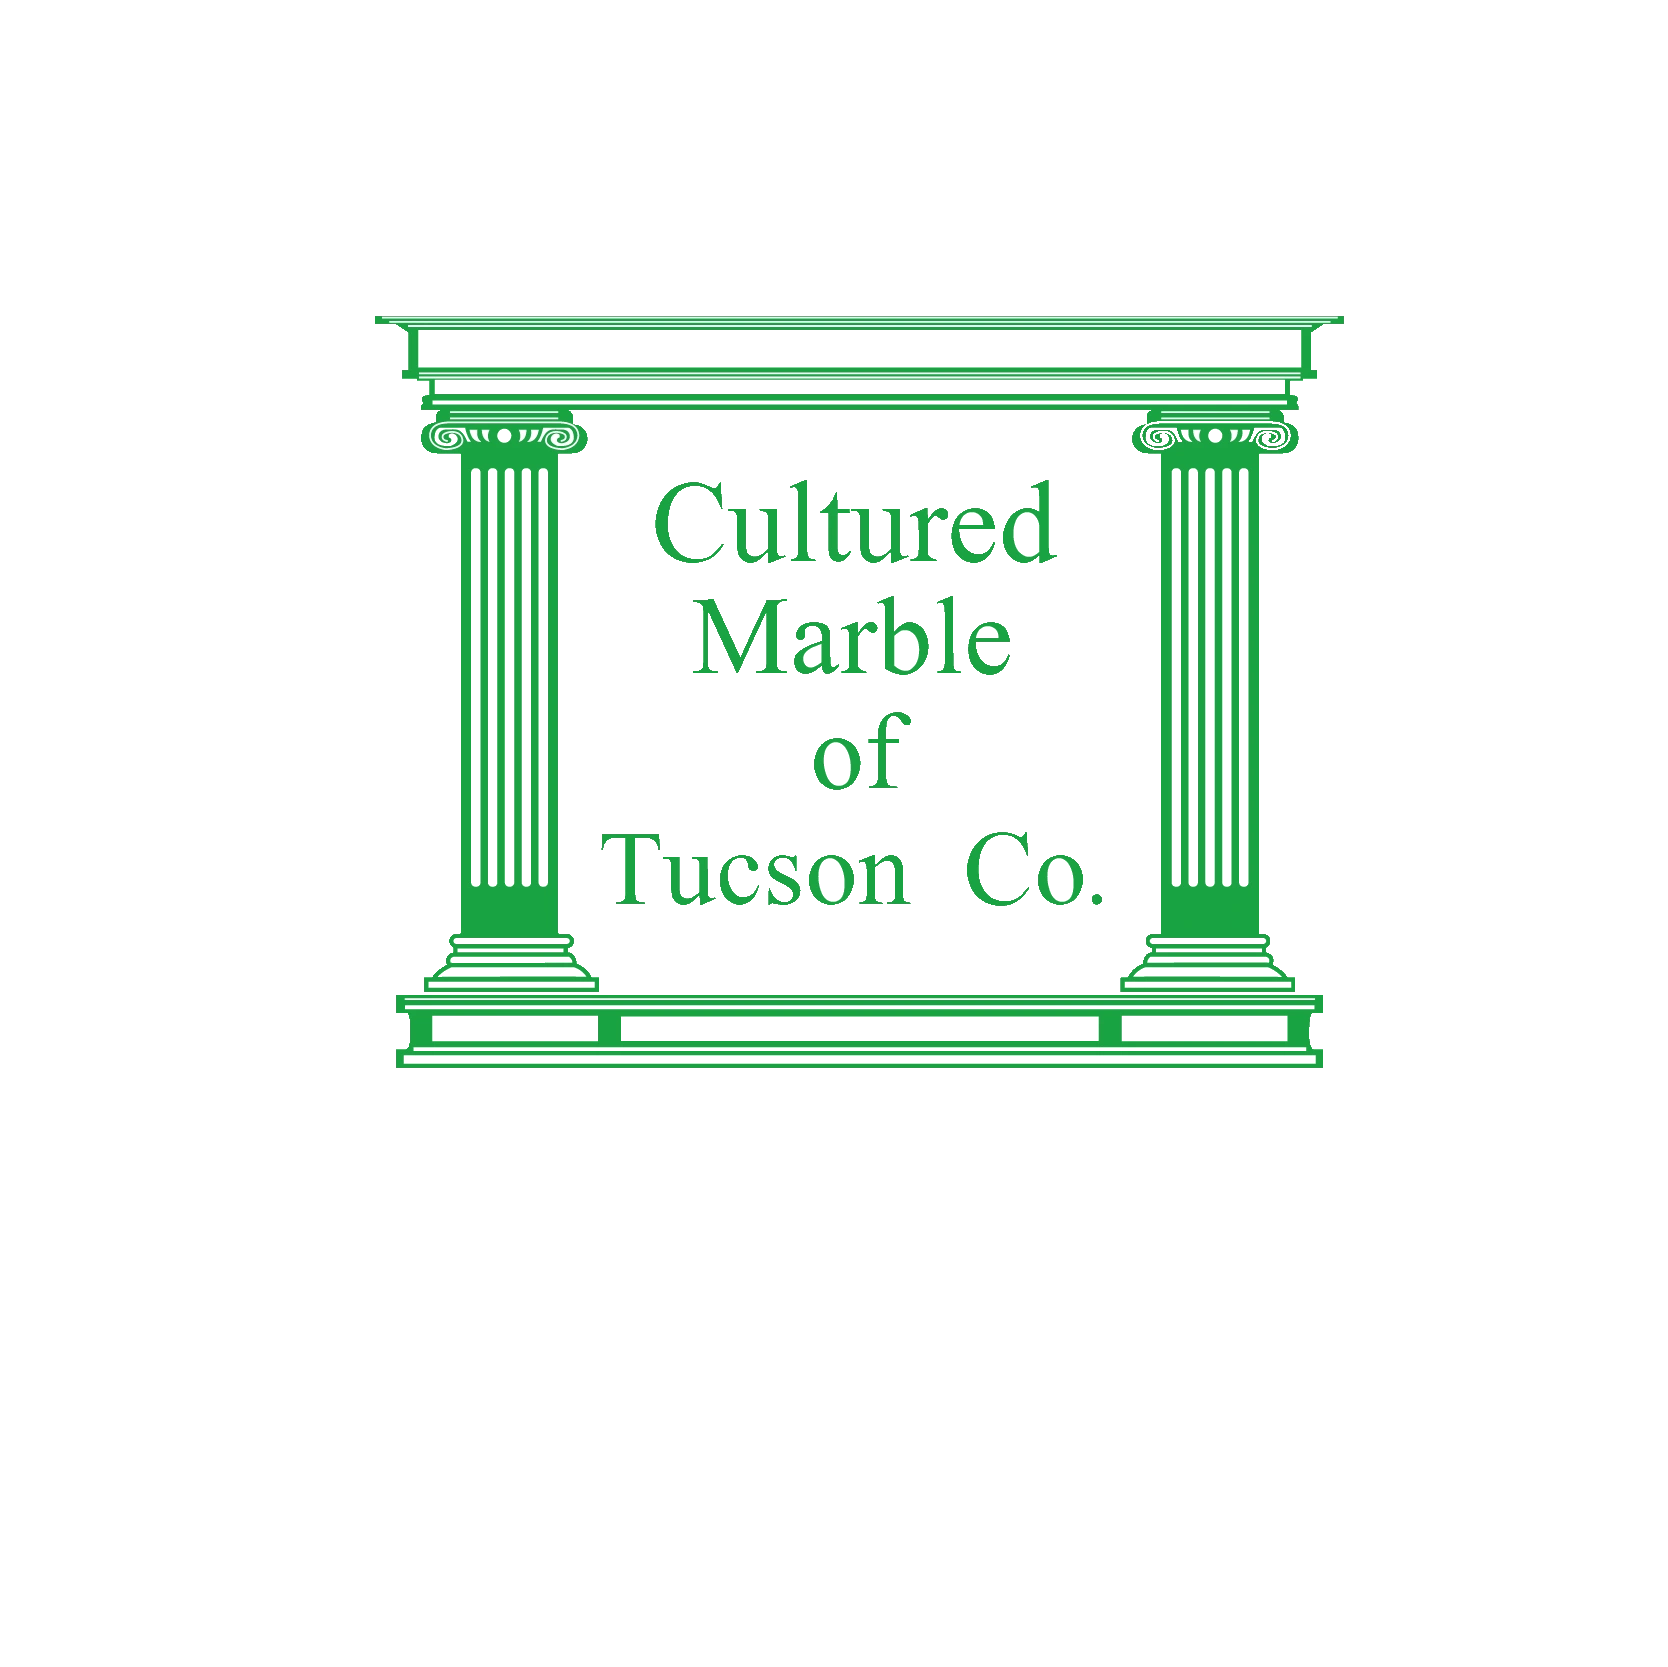 Cultured Marble of Tucson - Custom Fabrication and Installation of Cultured Marble and Granite!